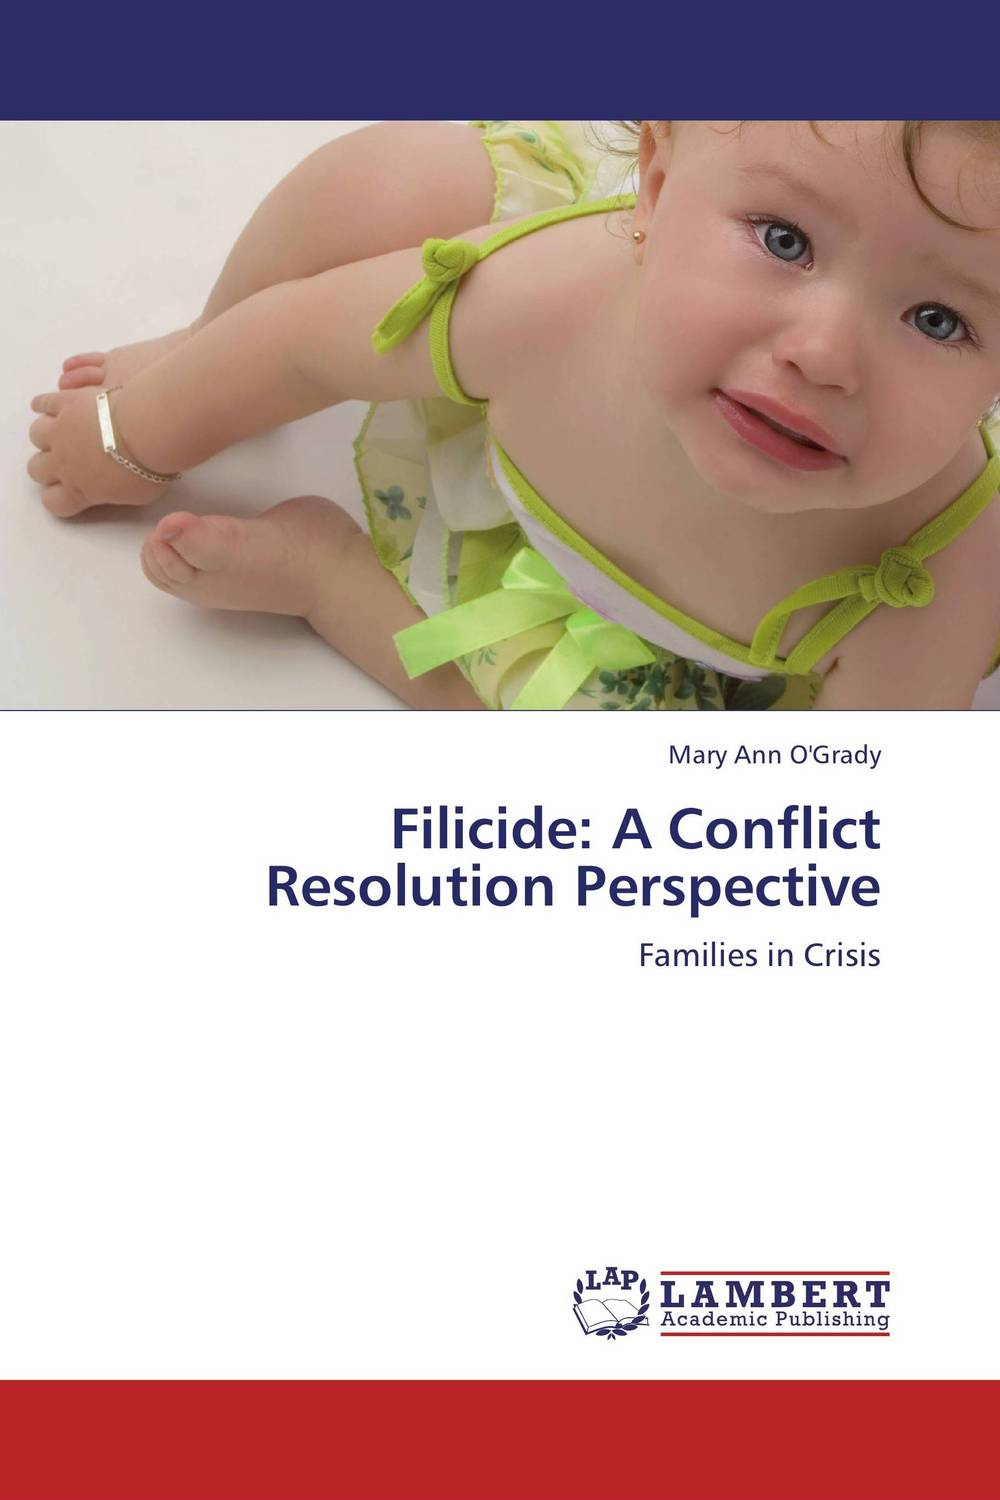 Filicide: A Conflict Resolution Perspective filicide a conflict resolution perspective